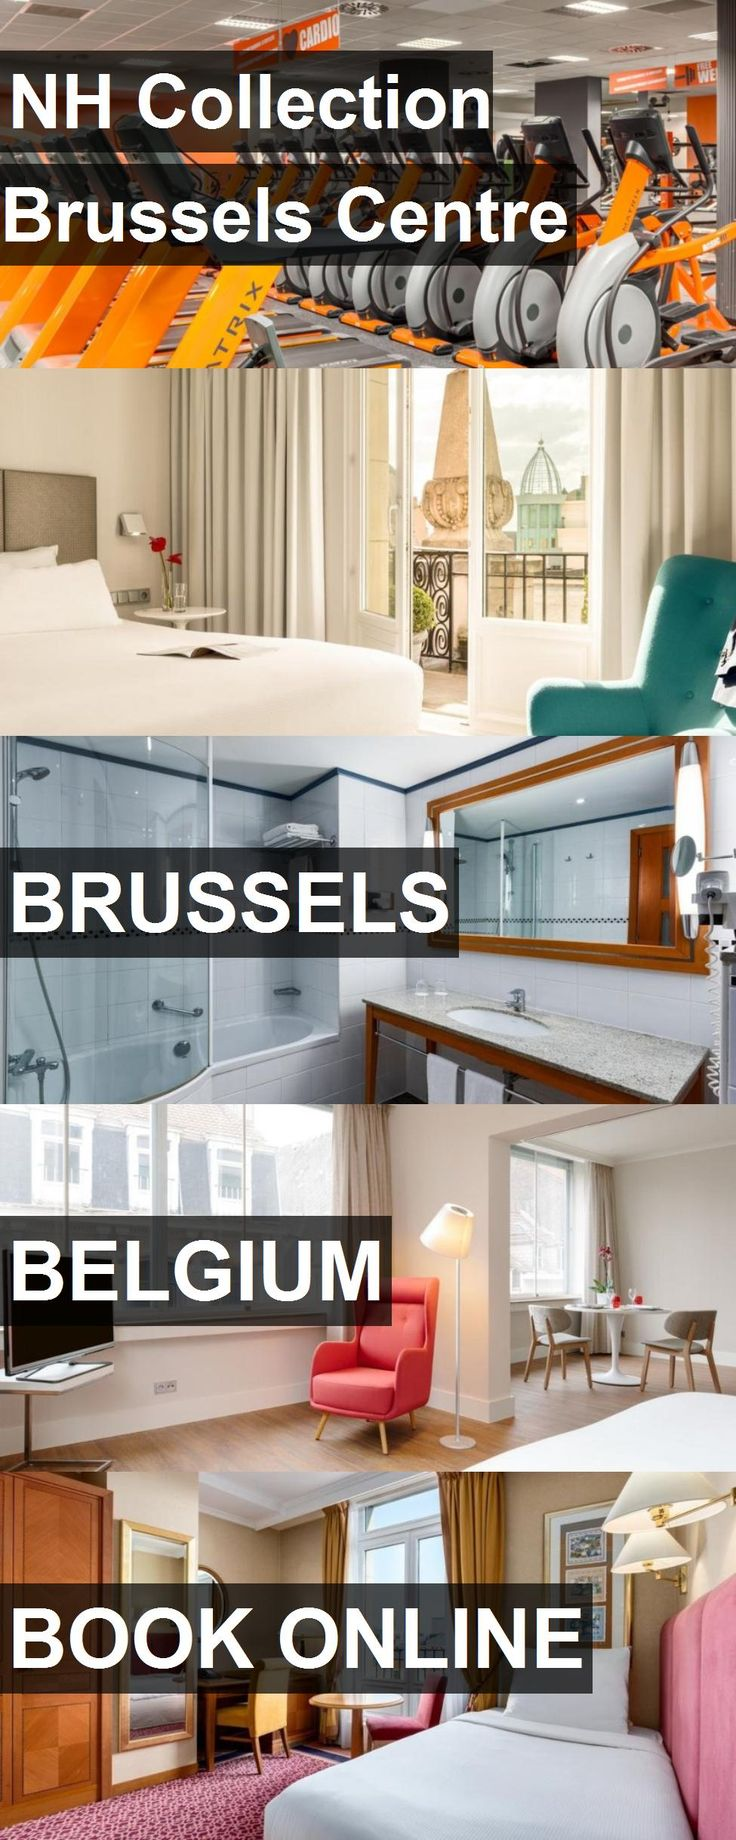 Hotel NH Collection Brussels Centre in Brussels, Belgium. For more information, photos, reviews and best prices please follow the link. #Belgium #Brussels #NHCollectionBrusselsCentre #hotel #travel #vacation